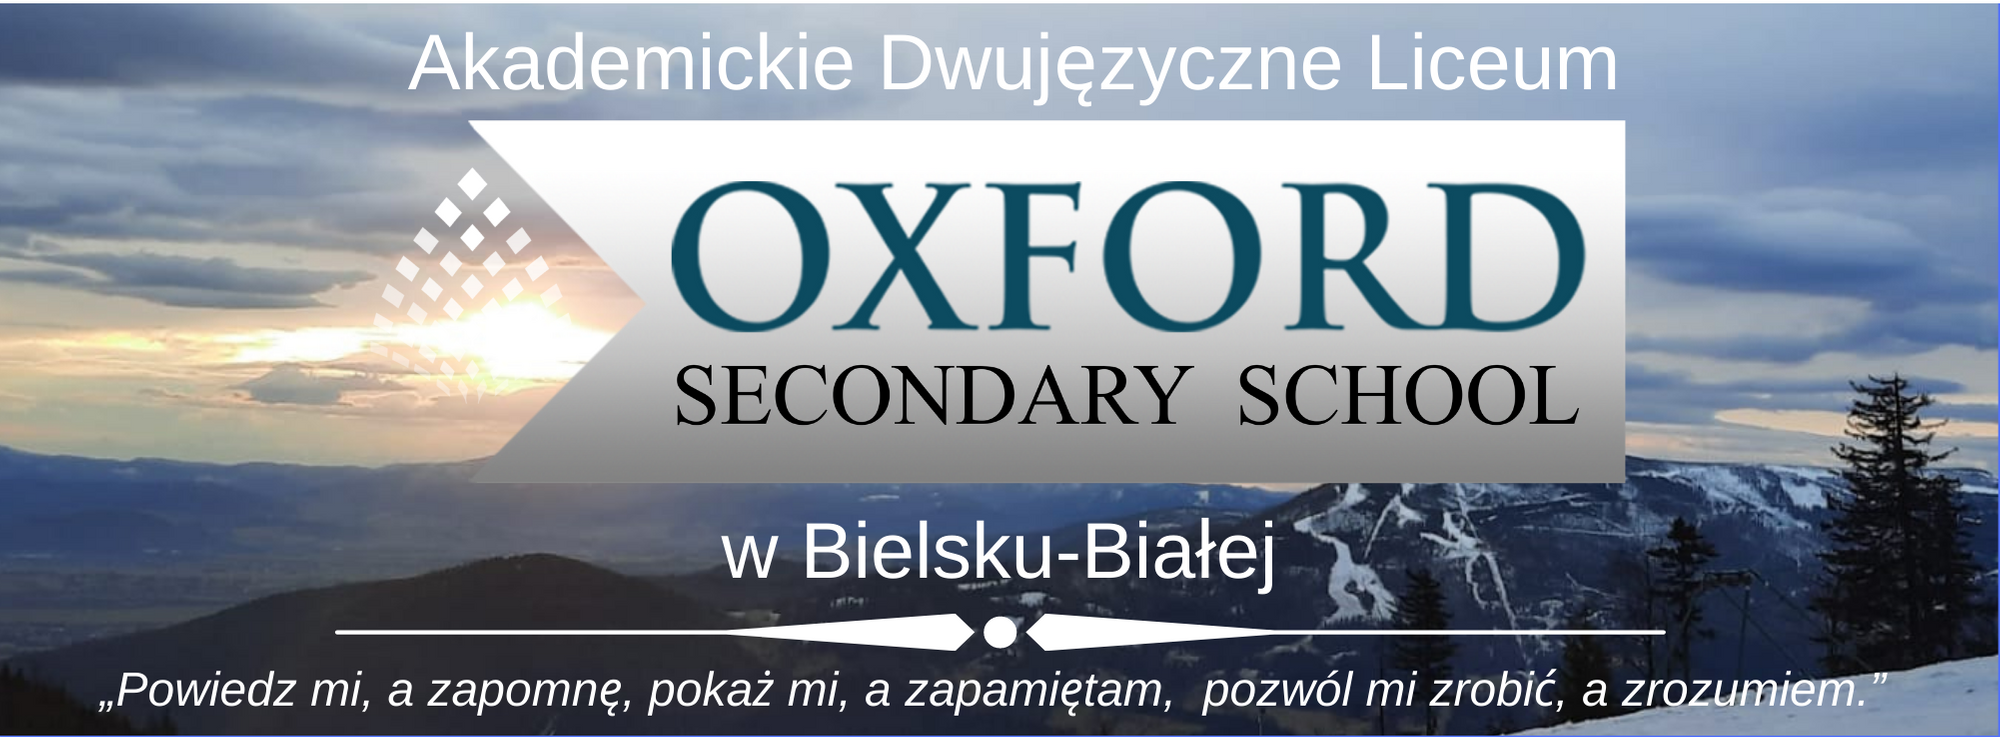 Oxford Secondary